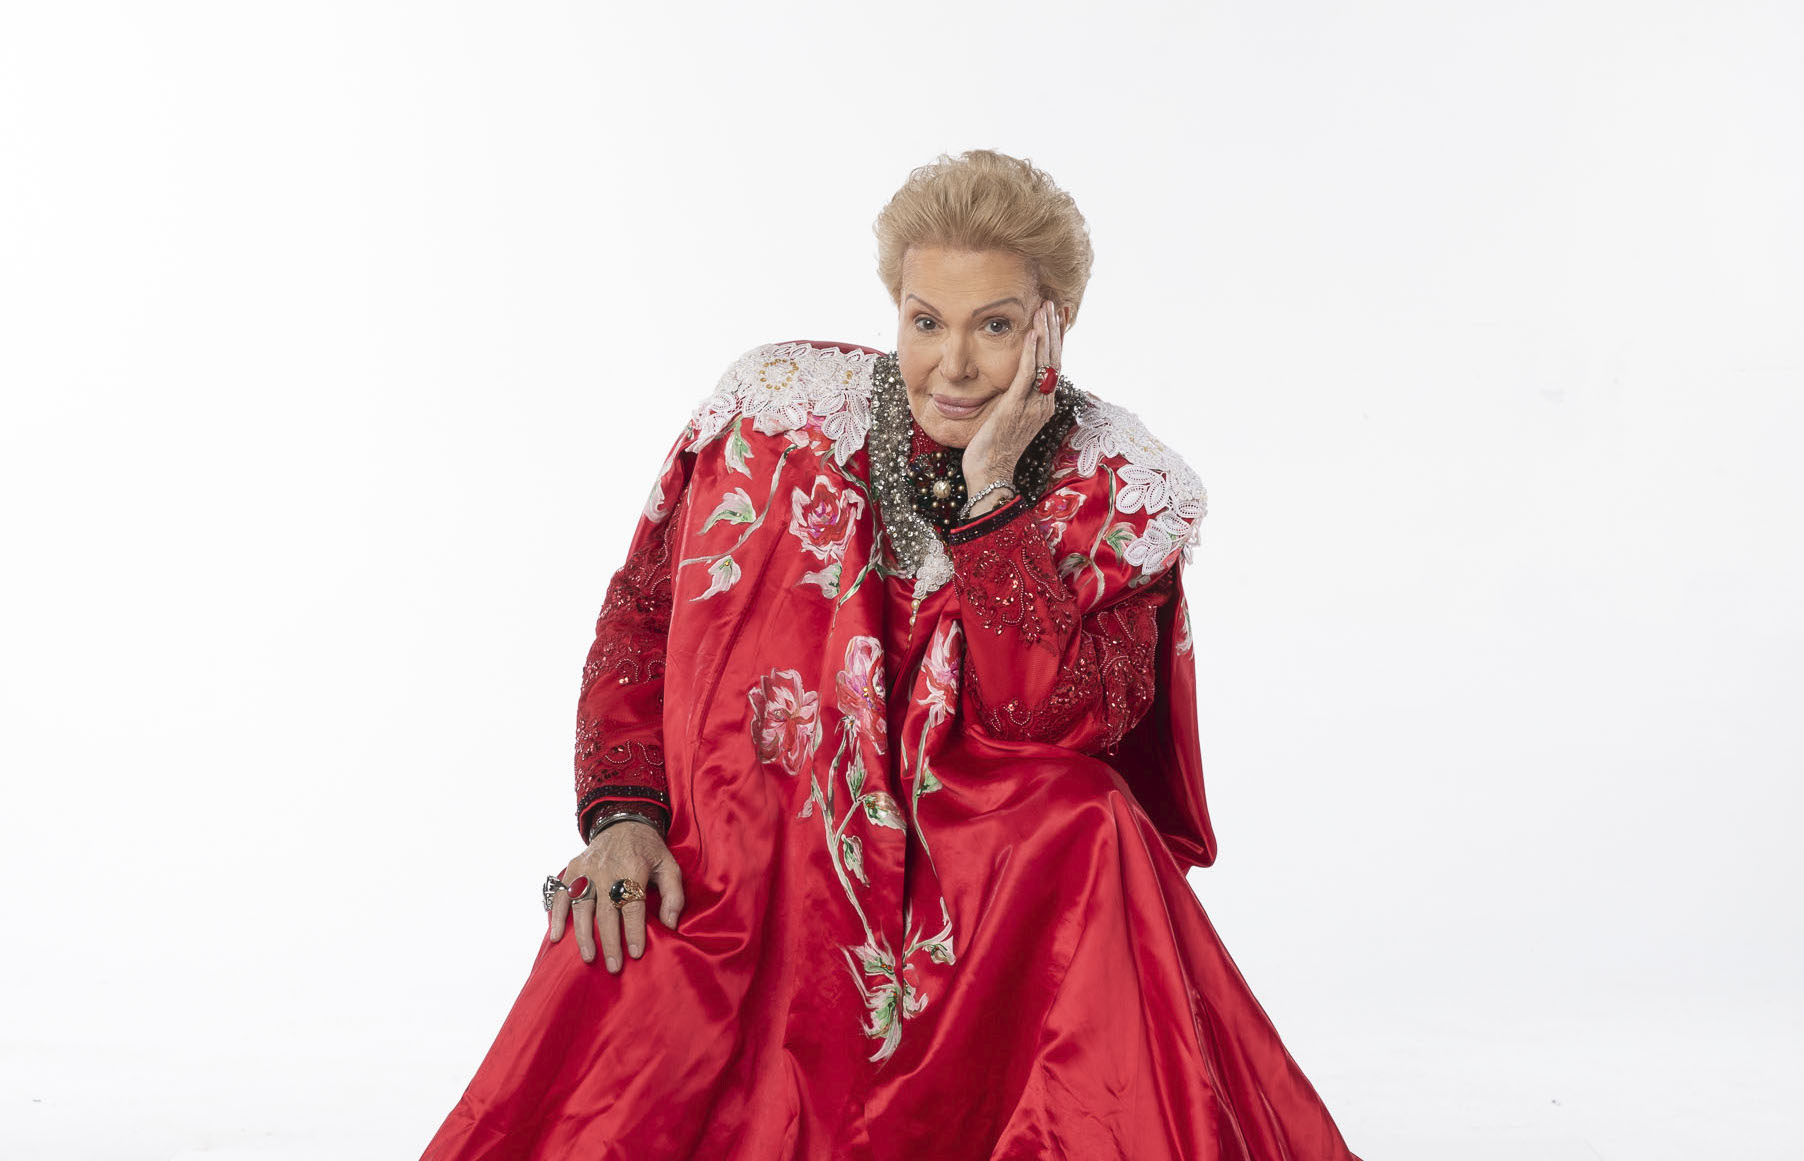 Walter Mercado - Hot List - August 2020